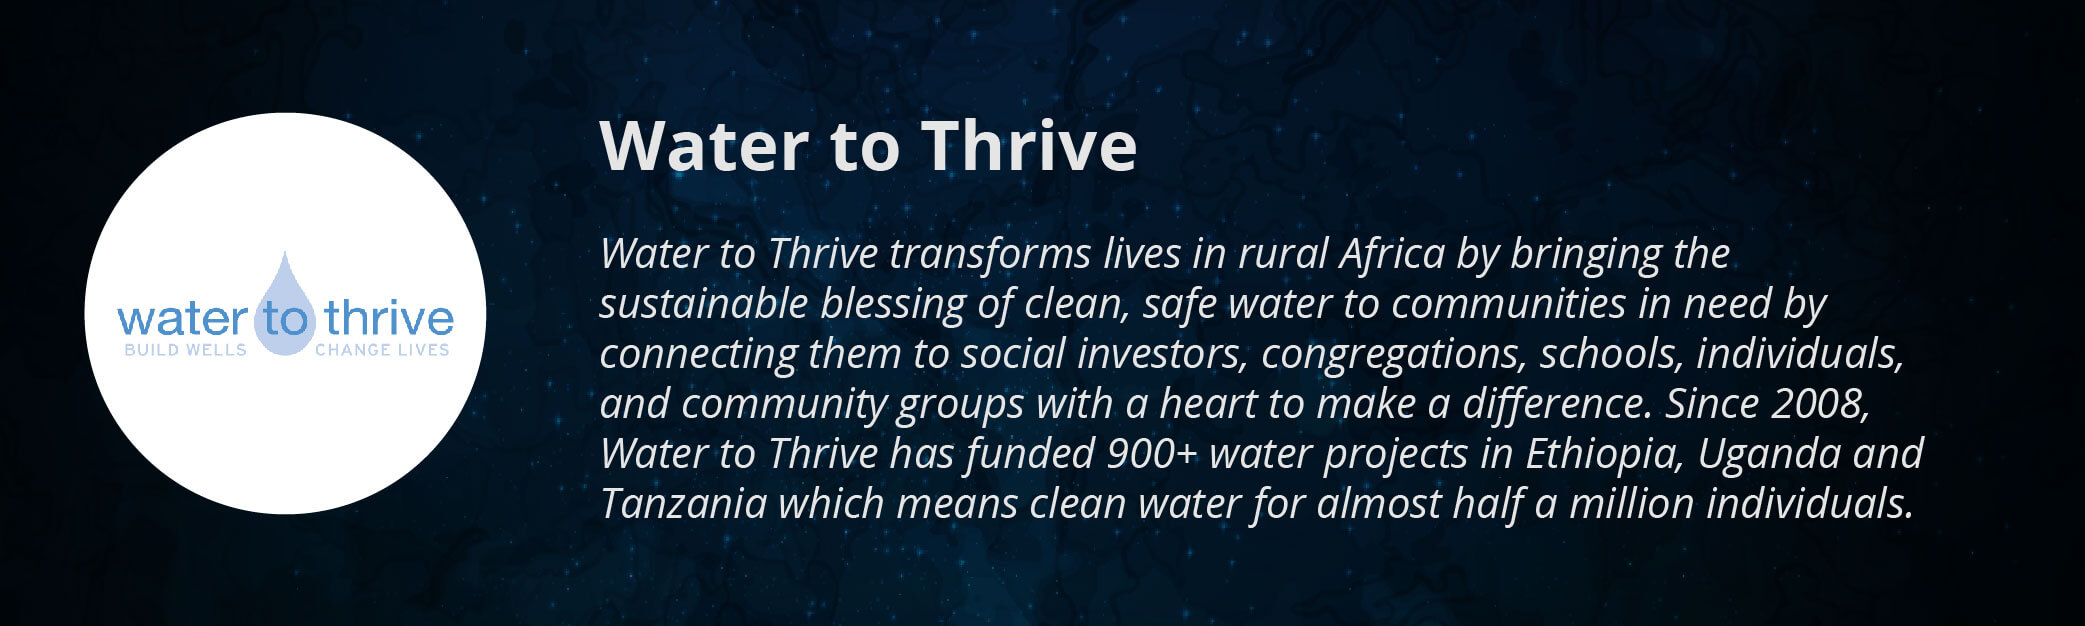 Water to Thrive